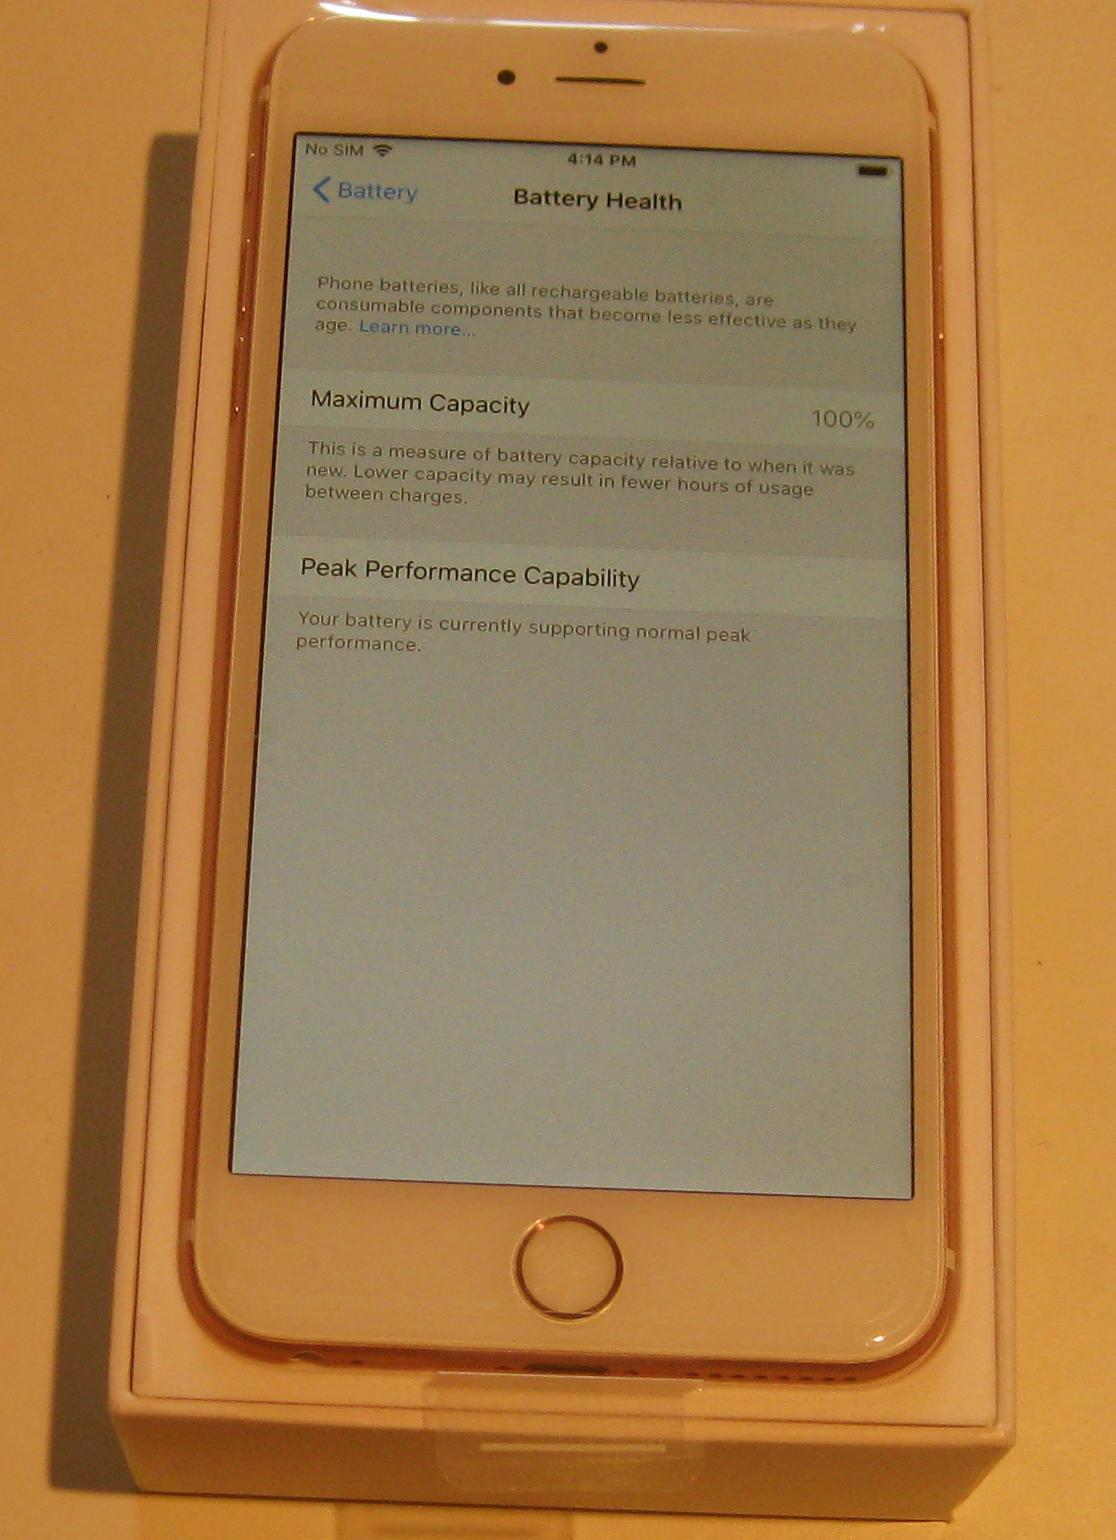 New Unlocked Rose Gold 128gb Iphone 6s Plus and 50 similar items